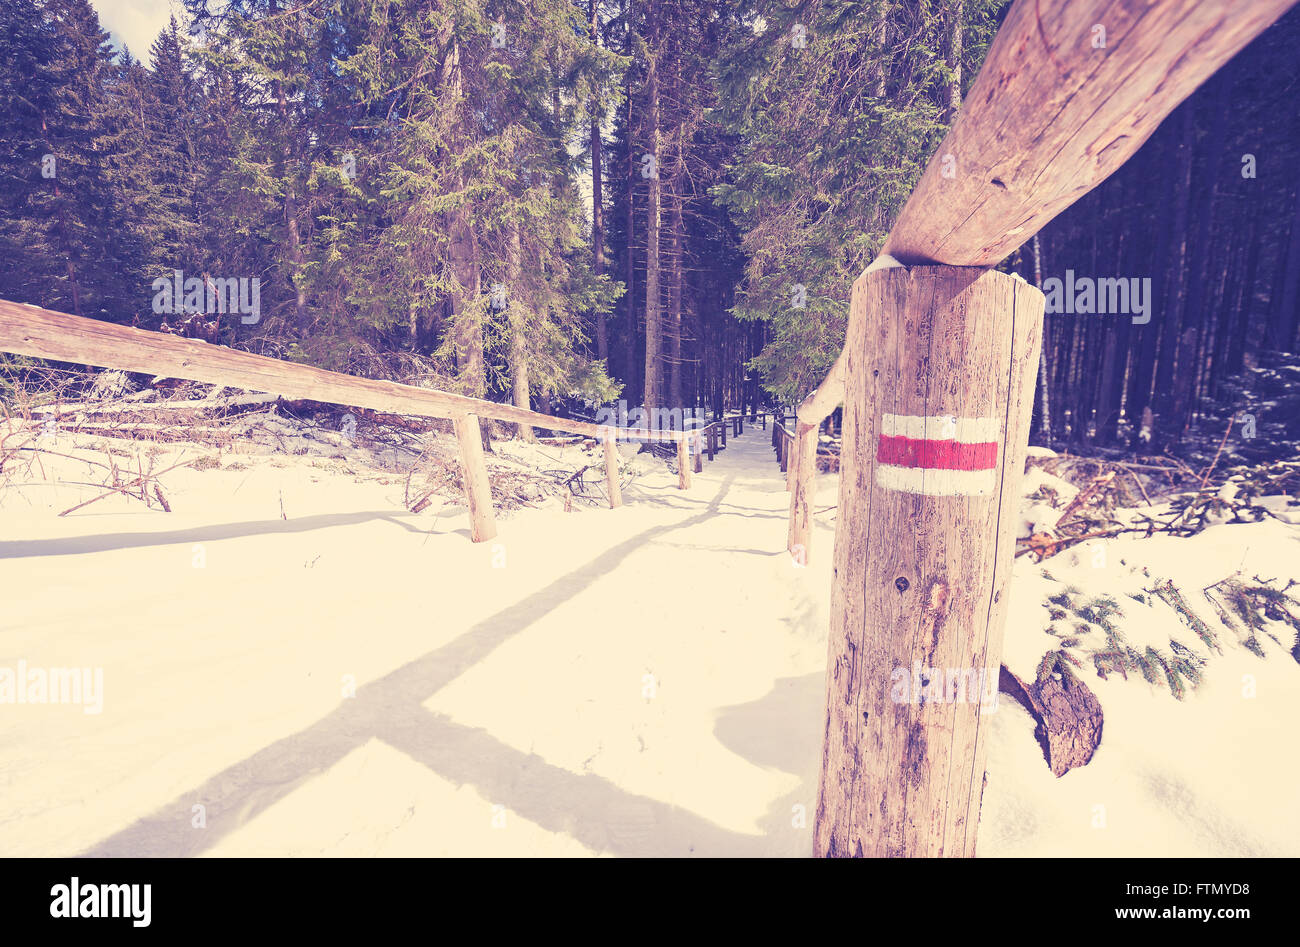 Vintage toned trail sign painted on perch, winter in Tatra mountains, Poland. Stock Photo